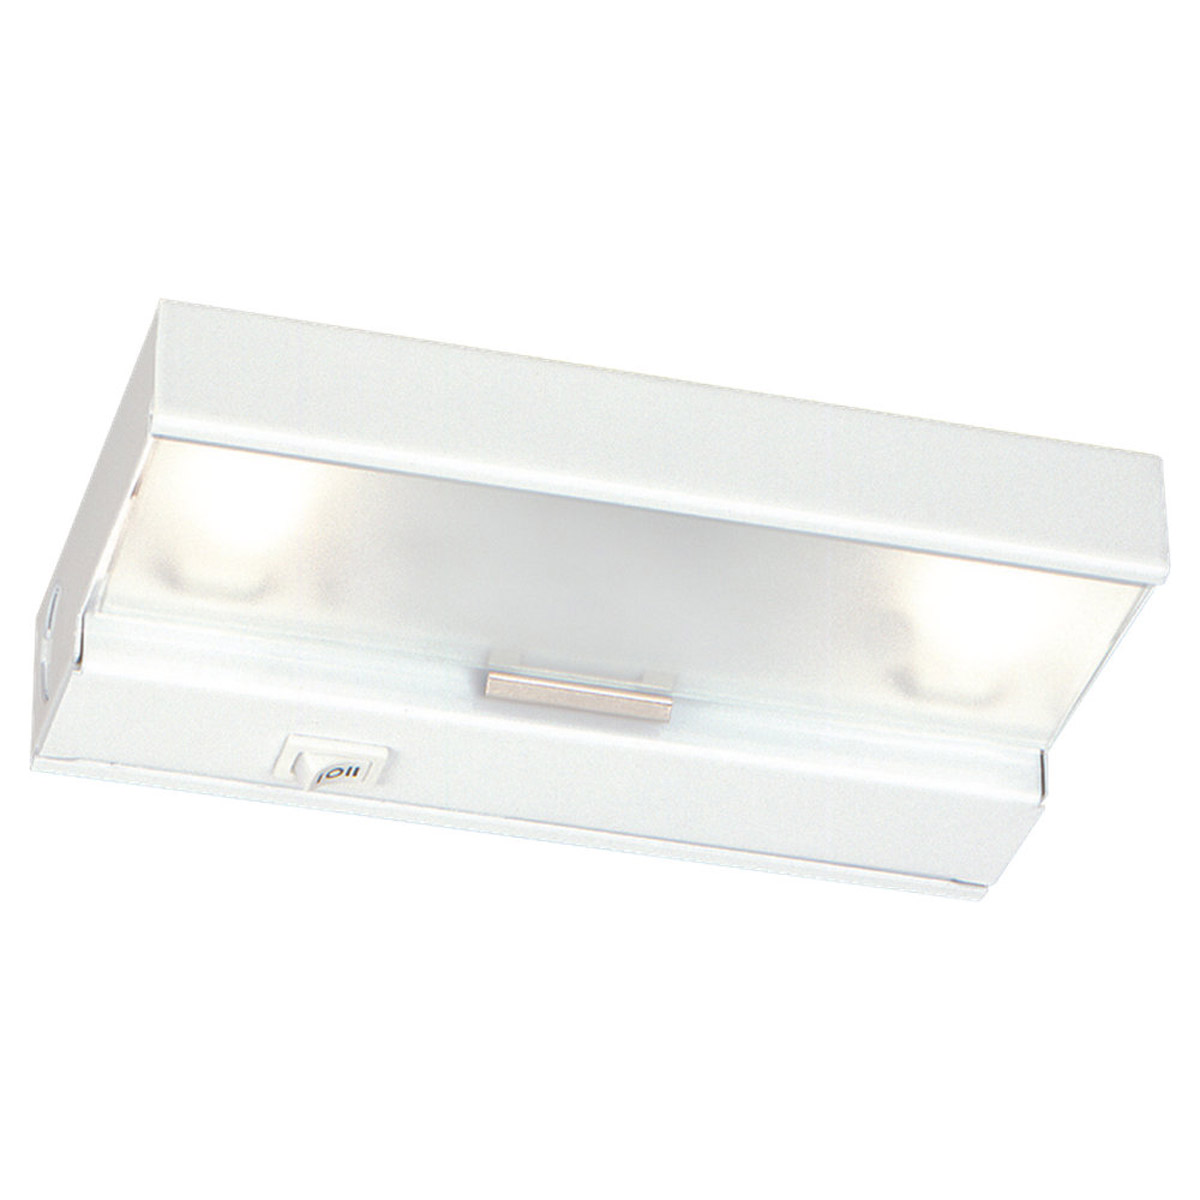 Sea Gull Lighting Ambiance 2 Light Undercabinet Xenon in White 98018-15